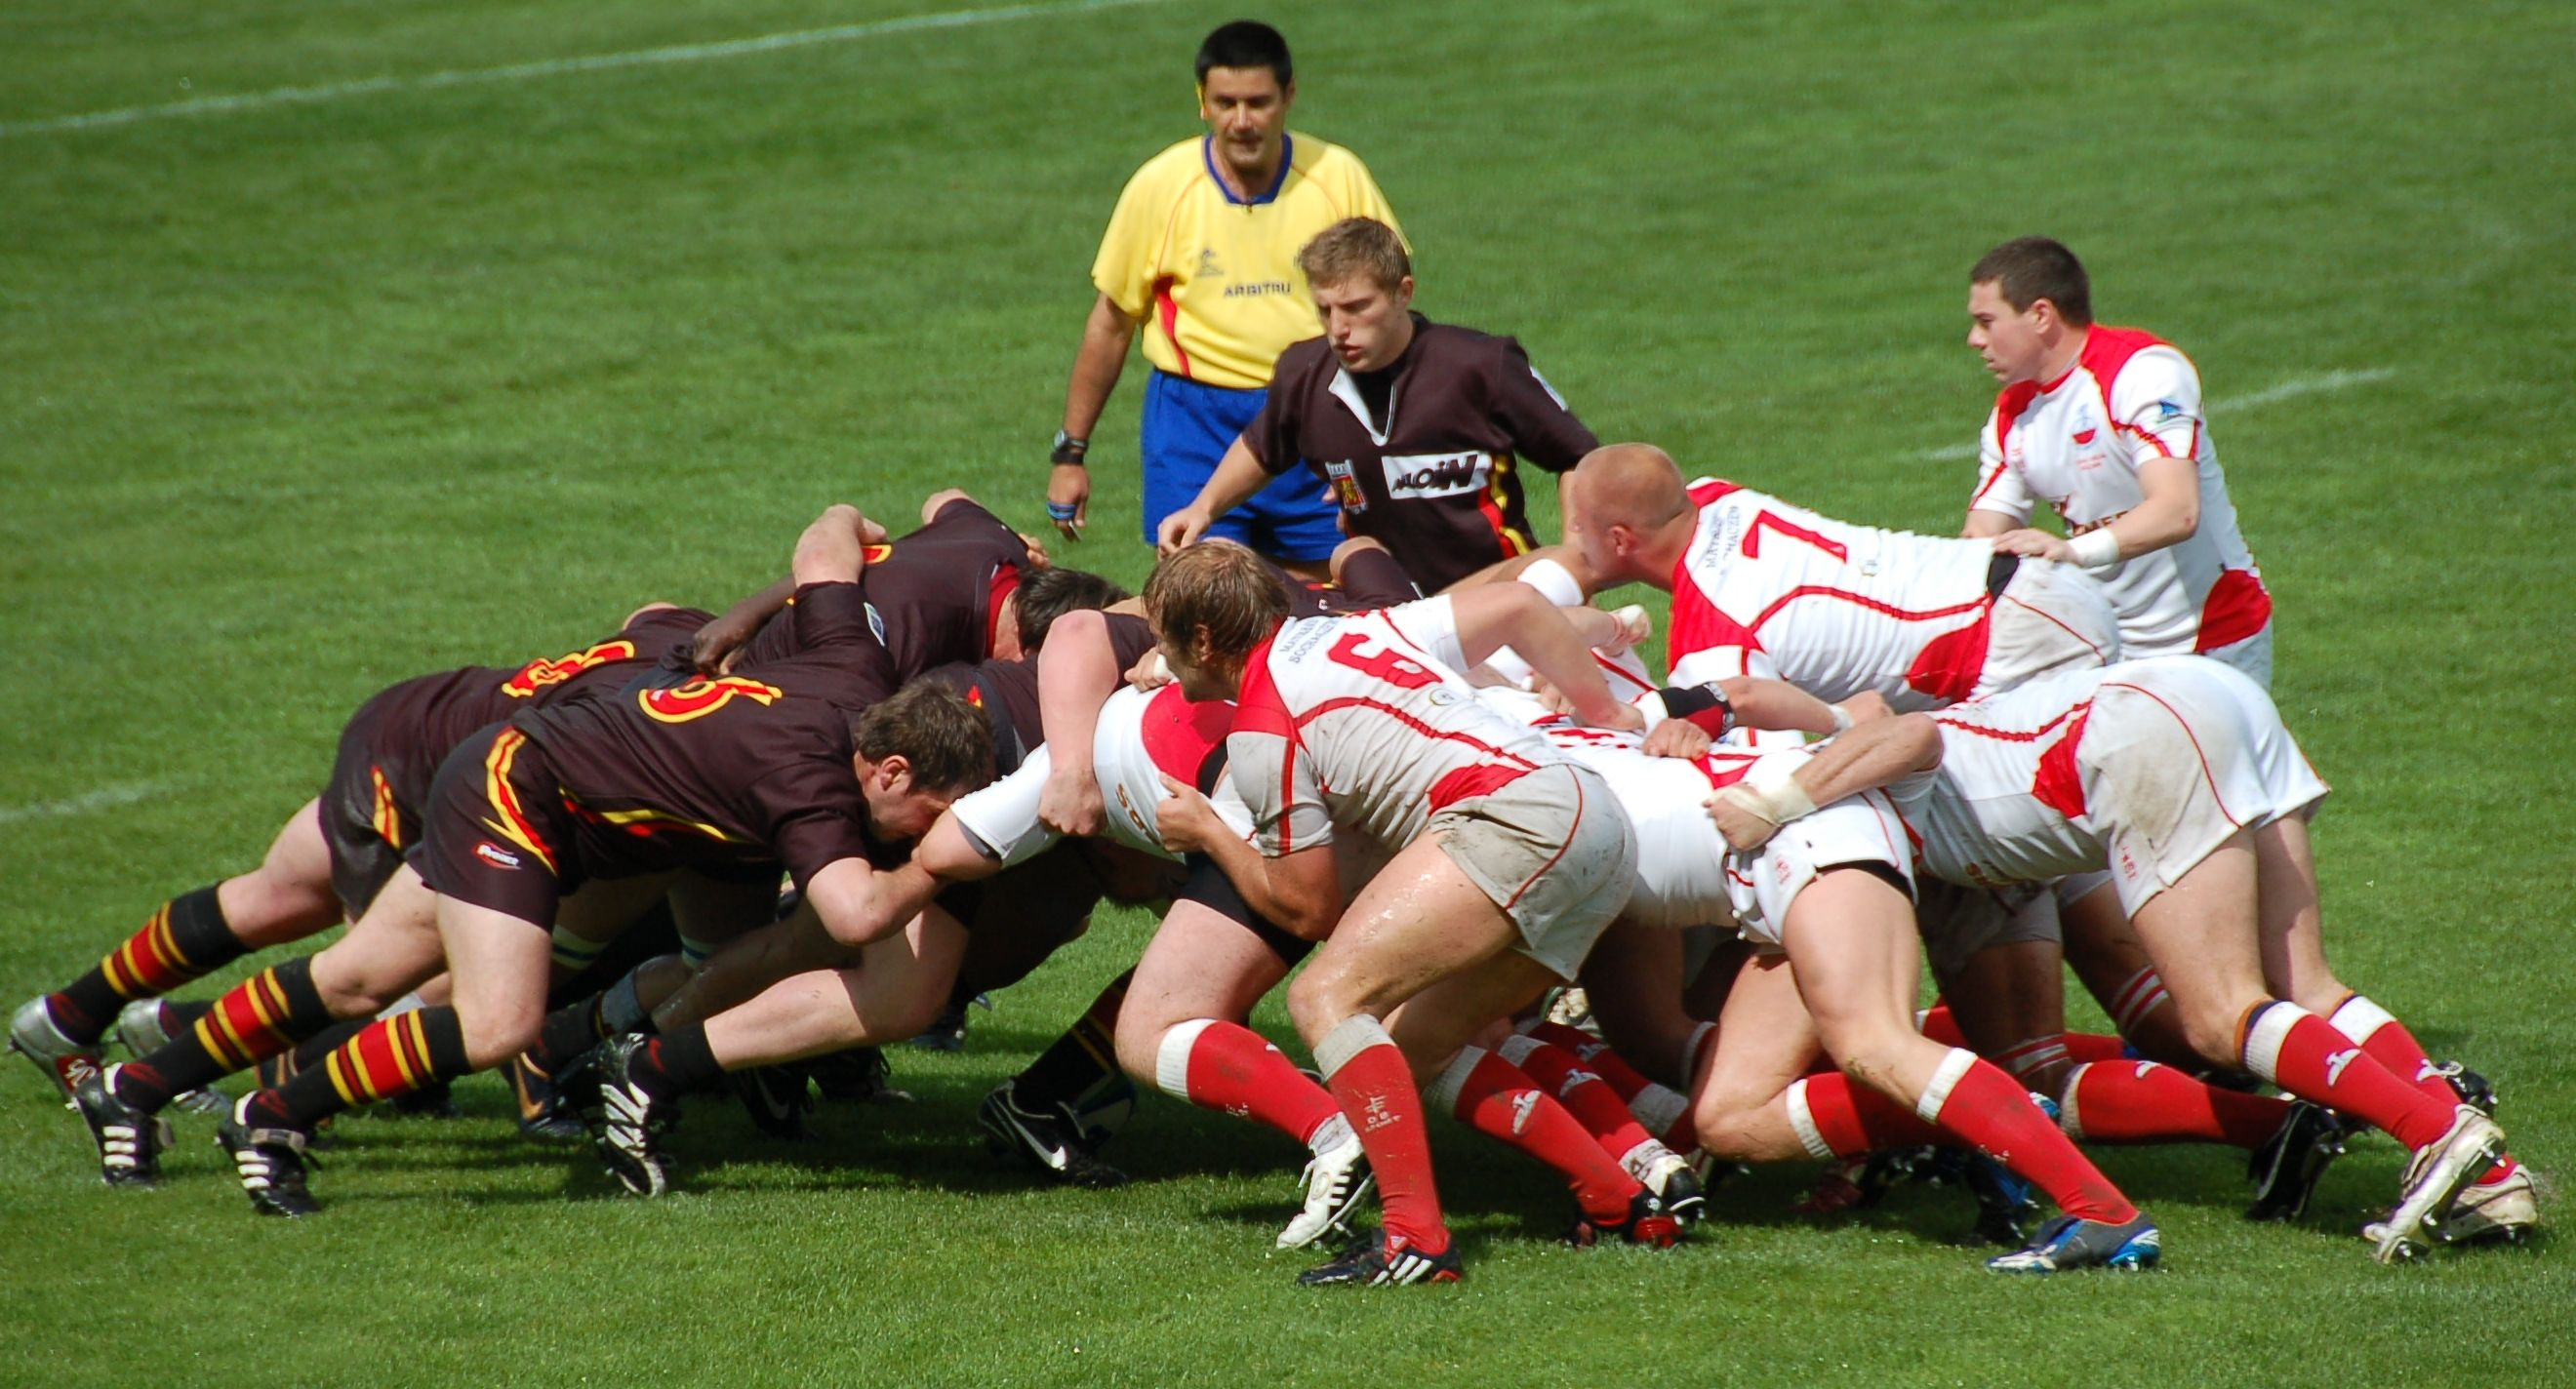 Hard Work And Team Work Always Give A Best Result Http Goo Gl Xlahlm Sports Watch Rugby Rugby